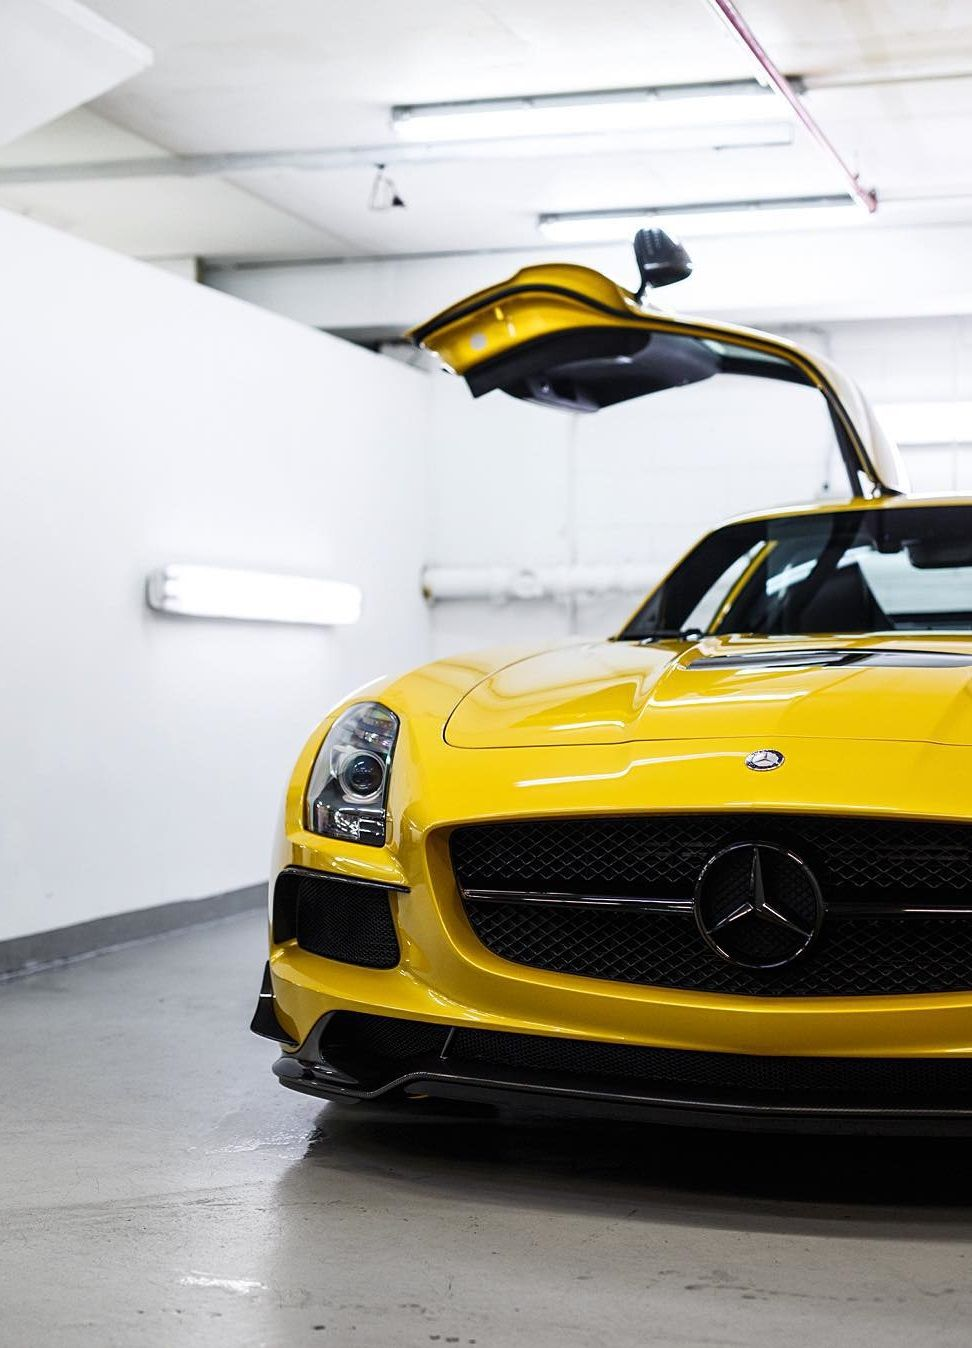 This #Mercedes SLS AMG in yellow is perfection. #SuperCar #Speed #Power #Performance #Cars #CarShowSafari